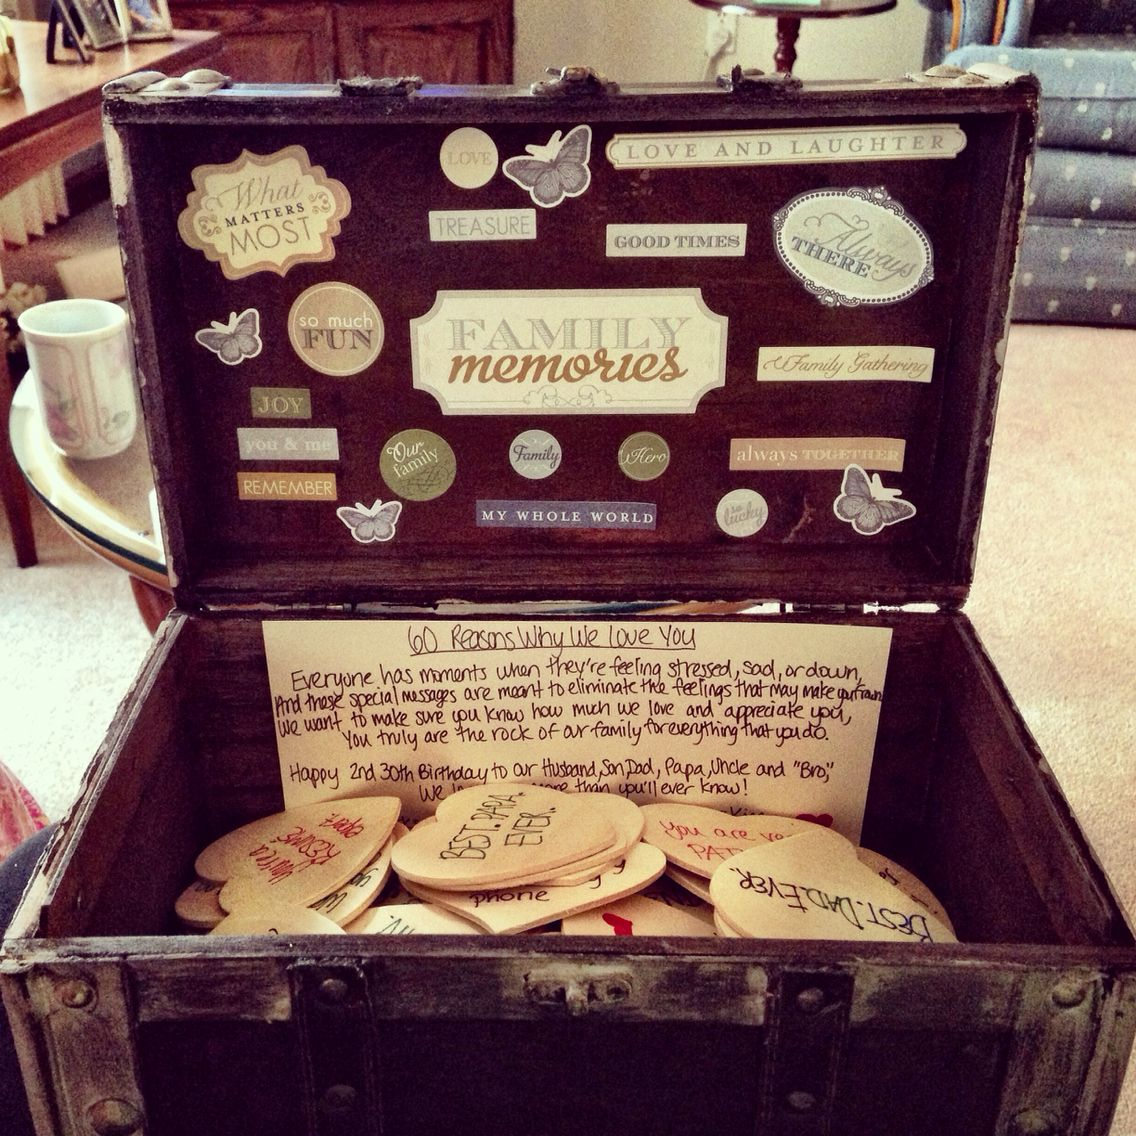 Sentimental gift idea I had for my Dad's 60th birthday